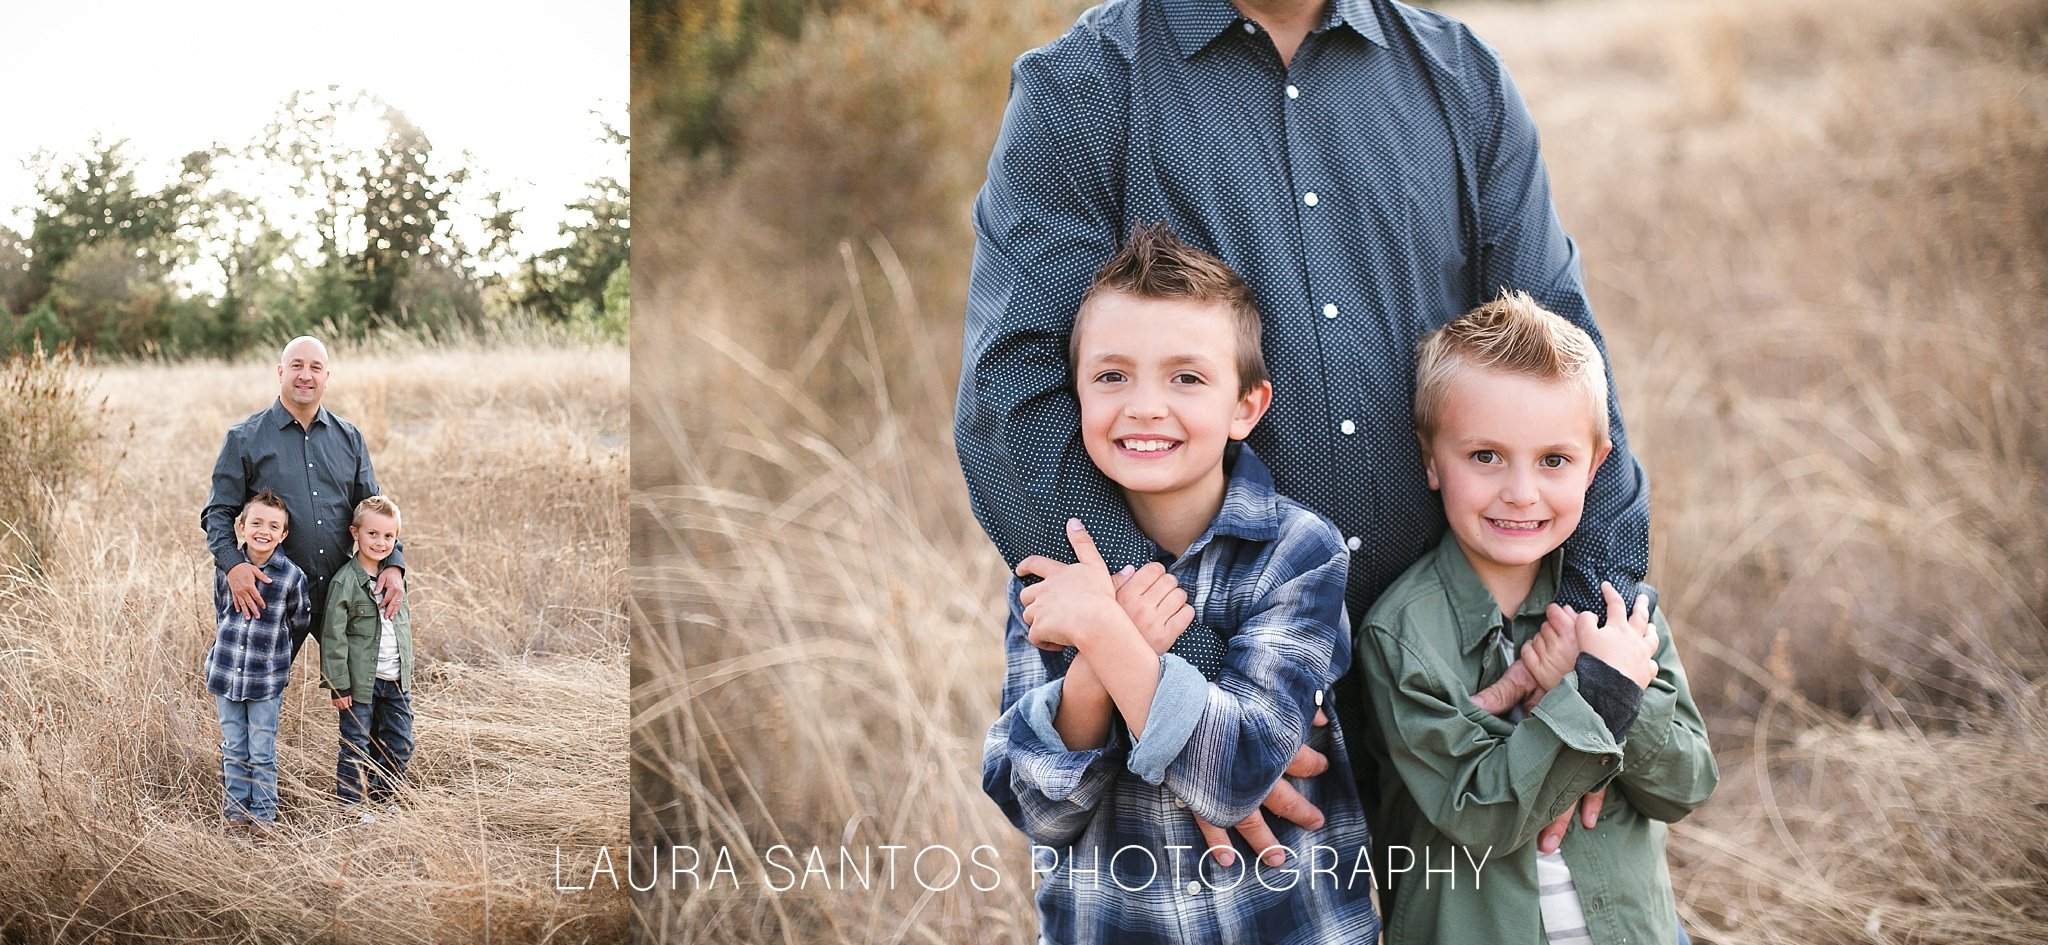 Laura Santos Photography Portland Oregon Family Photographer_0412.jpg